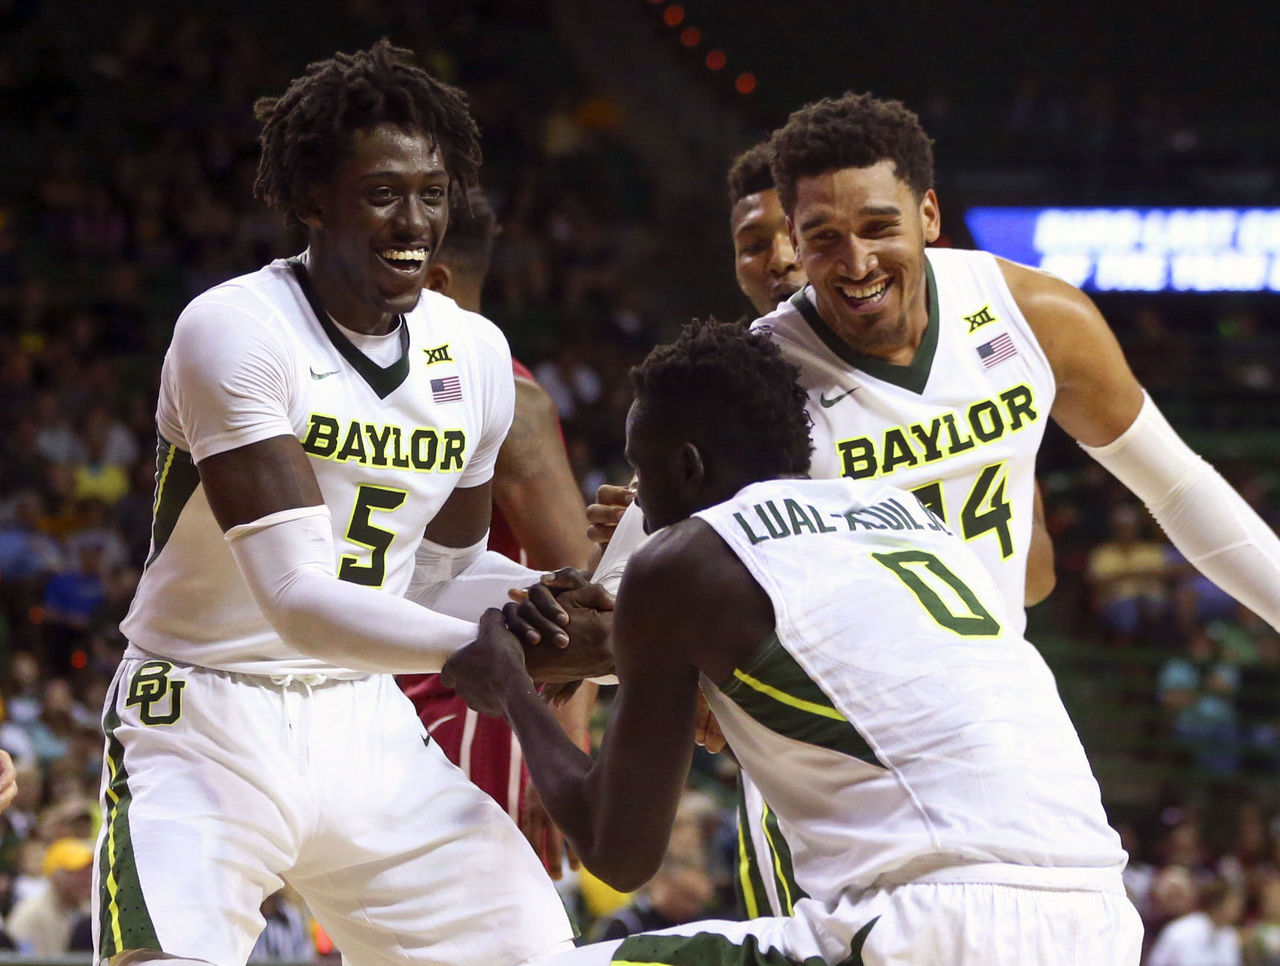 Cropped_2017-02-22t021054z_669724766_nocid_rtrmadp_3_ncaa-basketball-oklahoma-at-baylor